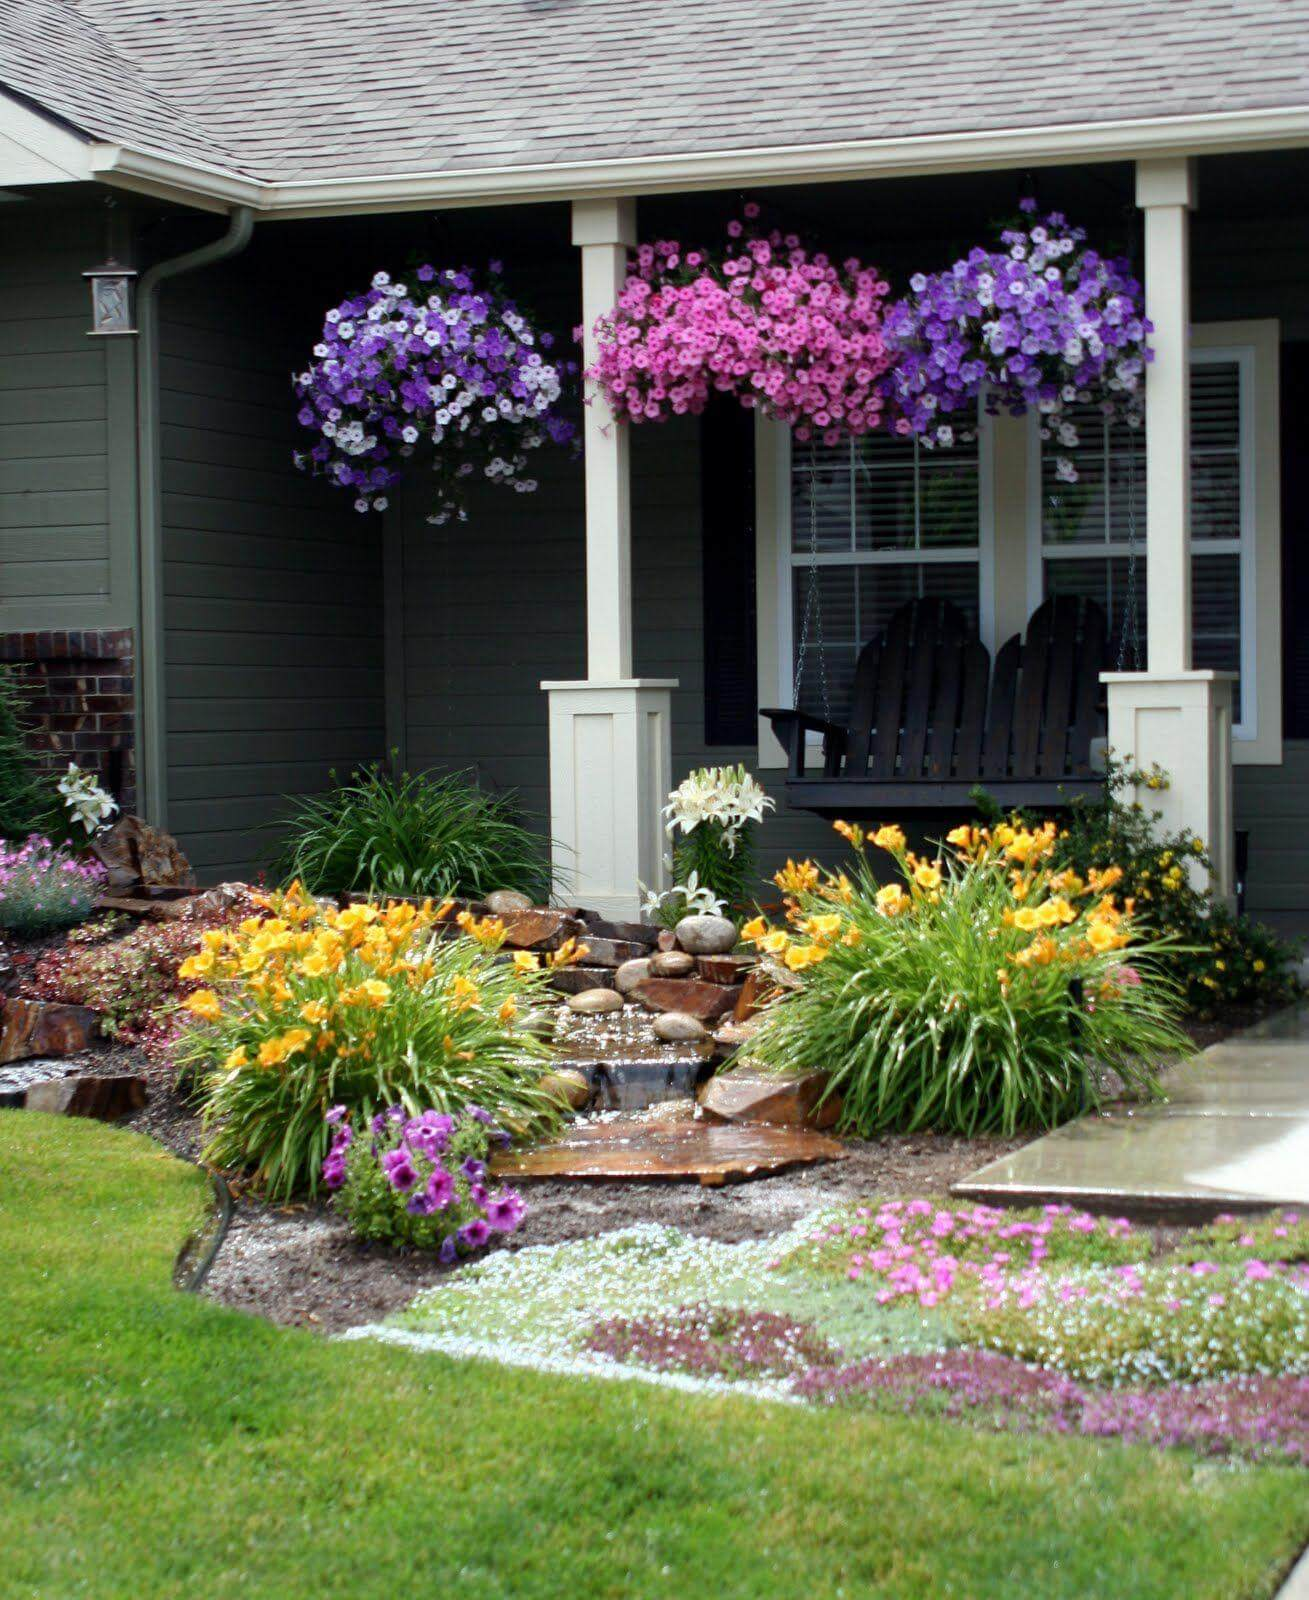 Front Yard Landscape Ideas Part - 38: 20. Porch Full Of Petunias